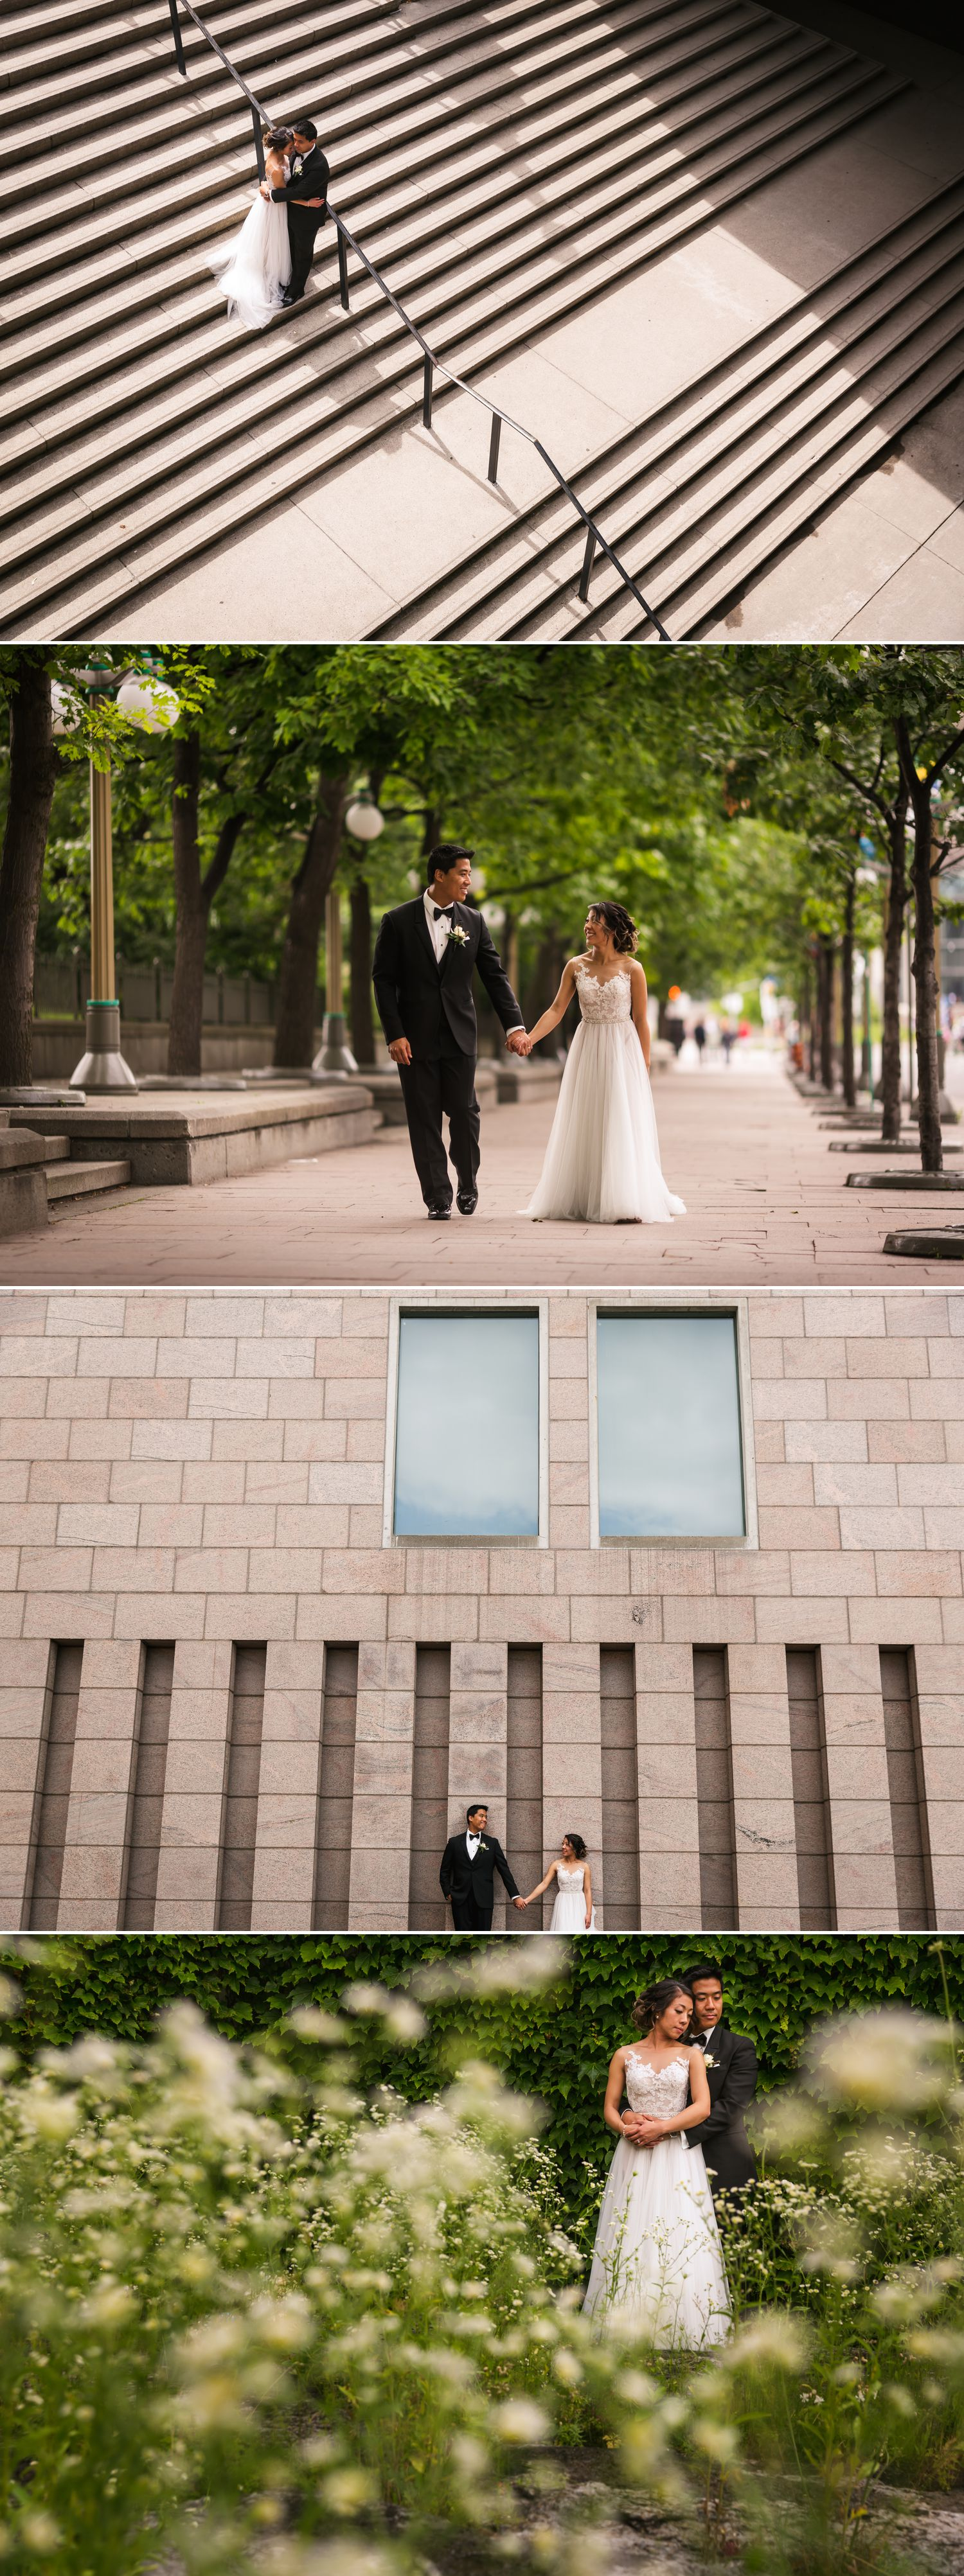 Portraits of the bride and groom taken outside in downtown Ottawa